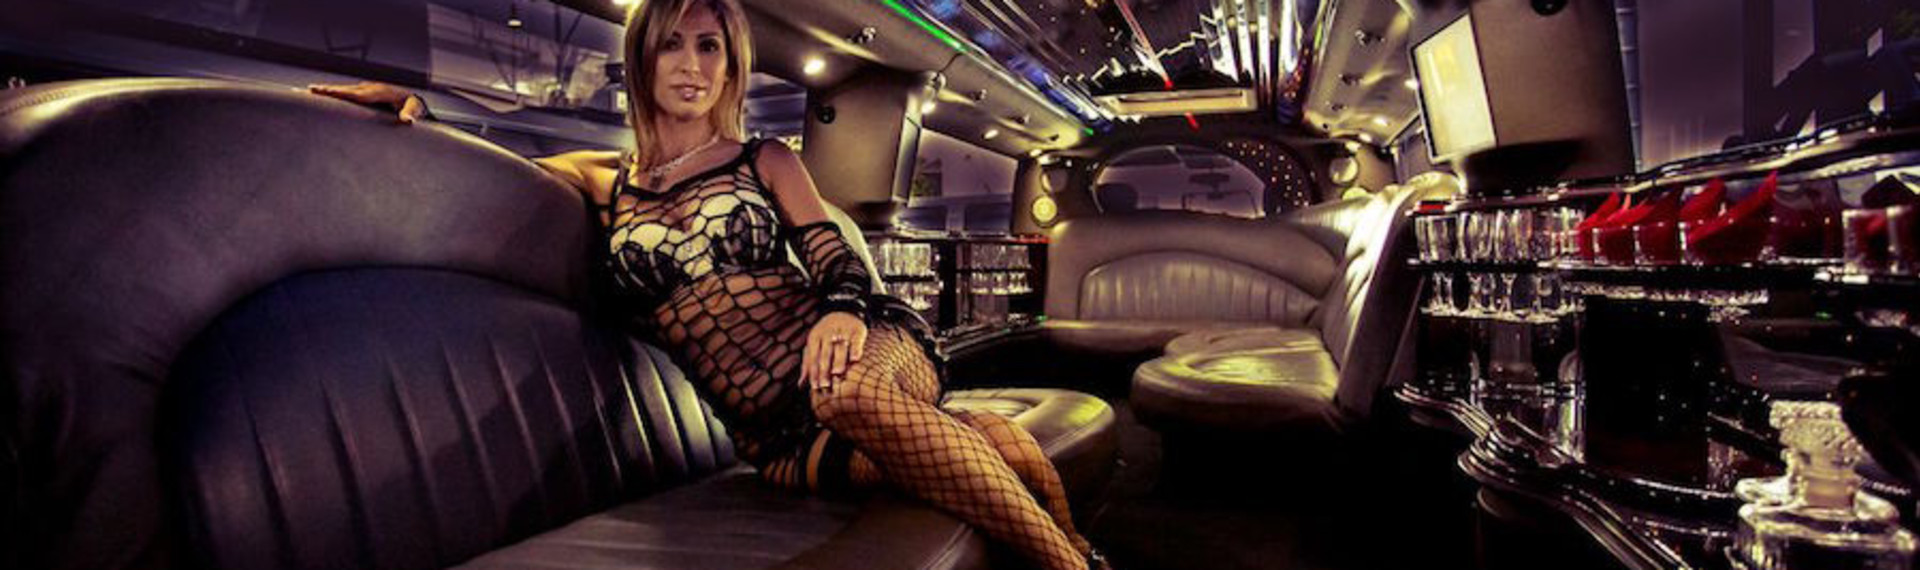 Strip-Limo-Transfer in Warschau | Luxus und Lust to go